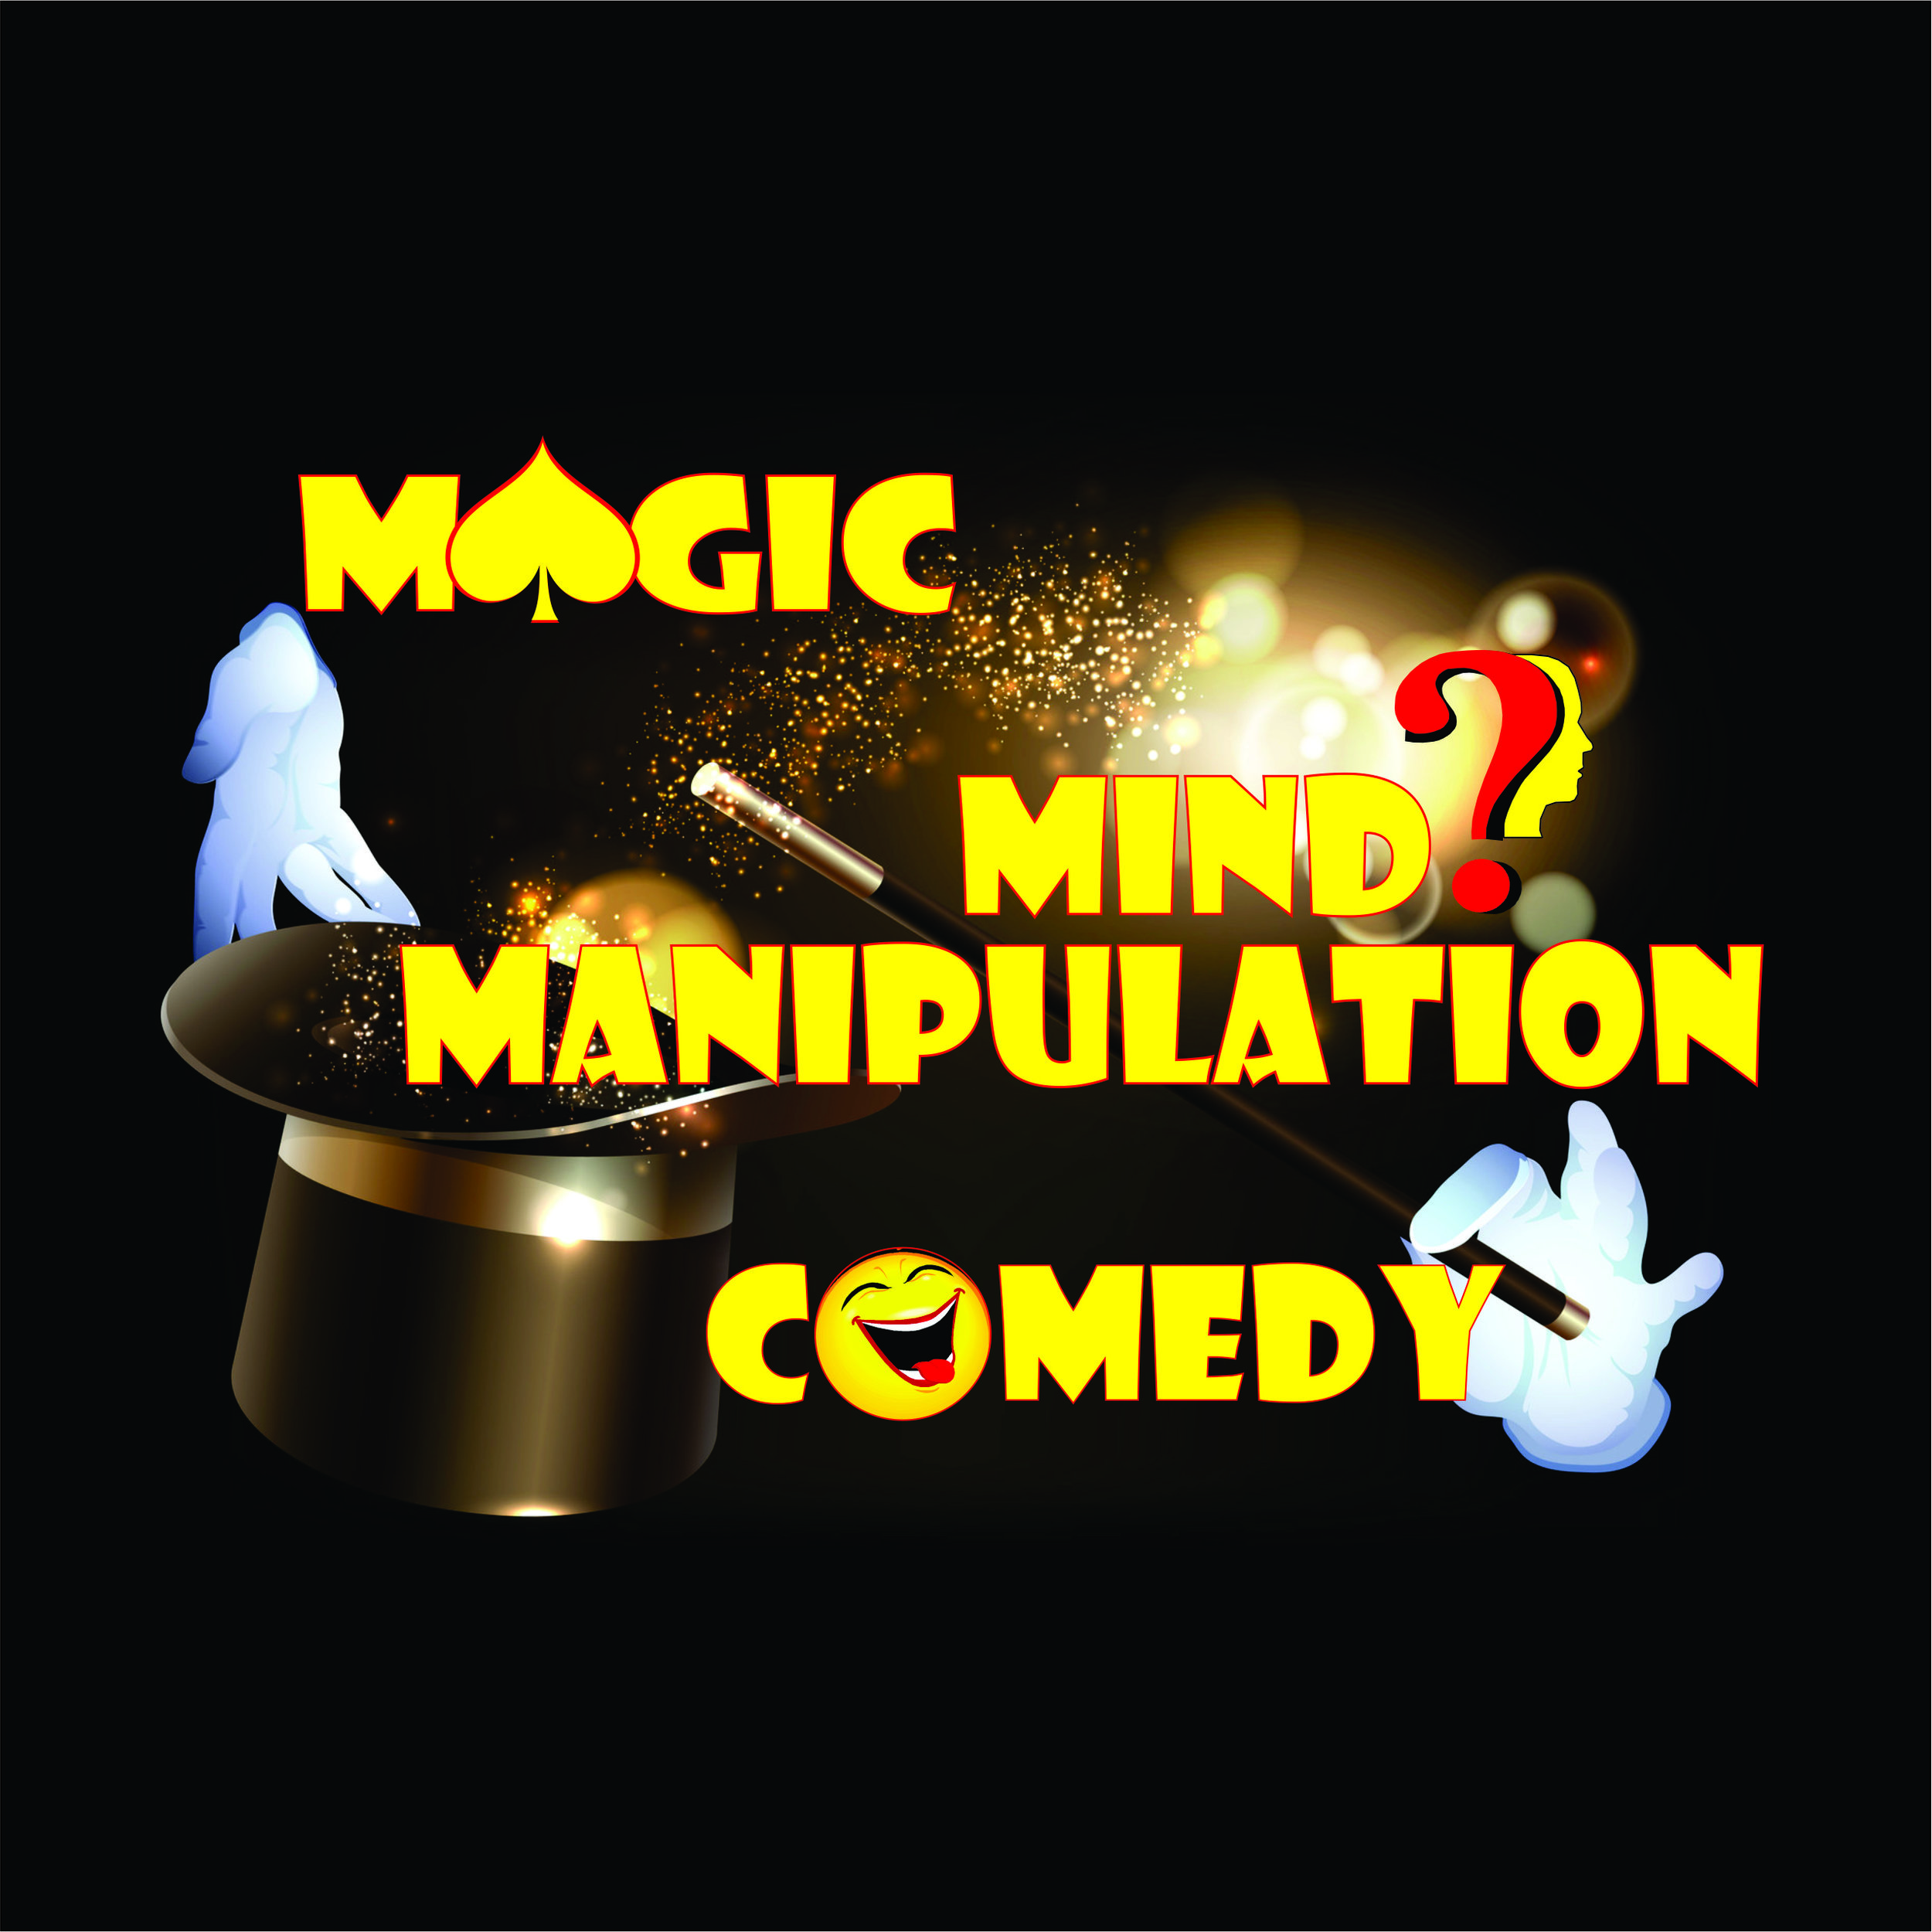 Mystify Magic Mind Manipulation Comedy.jpg